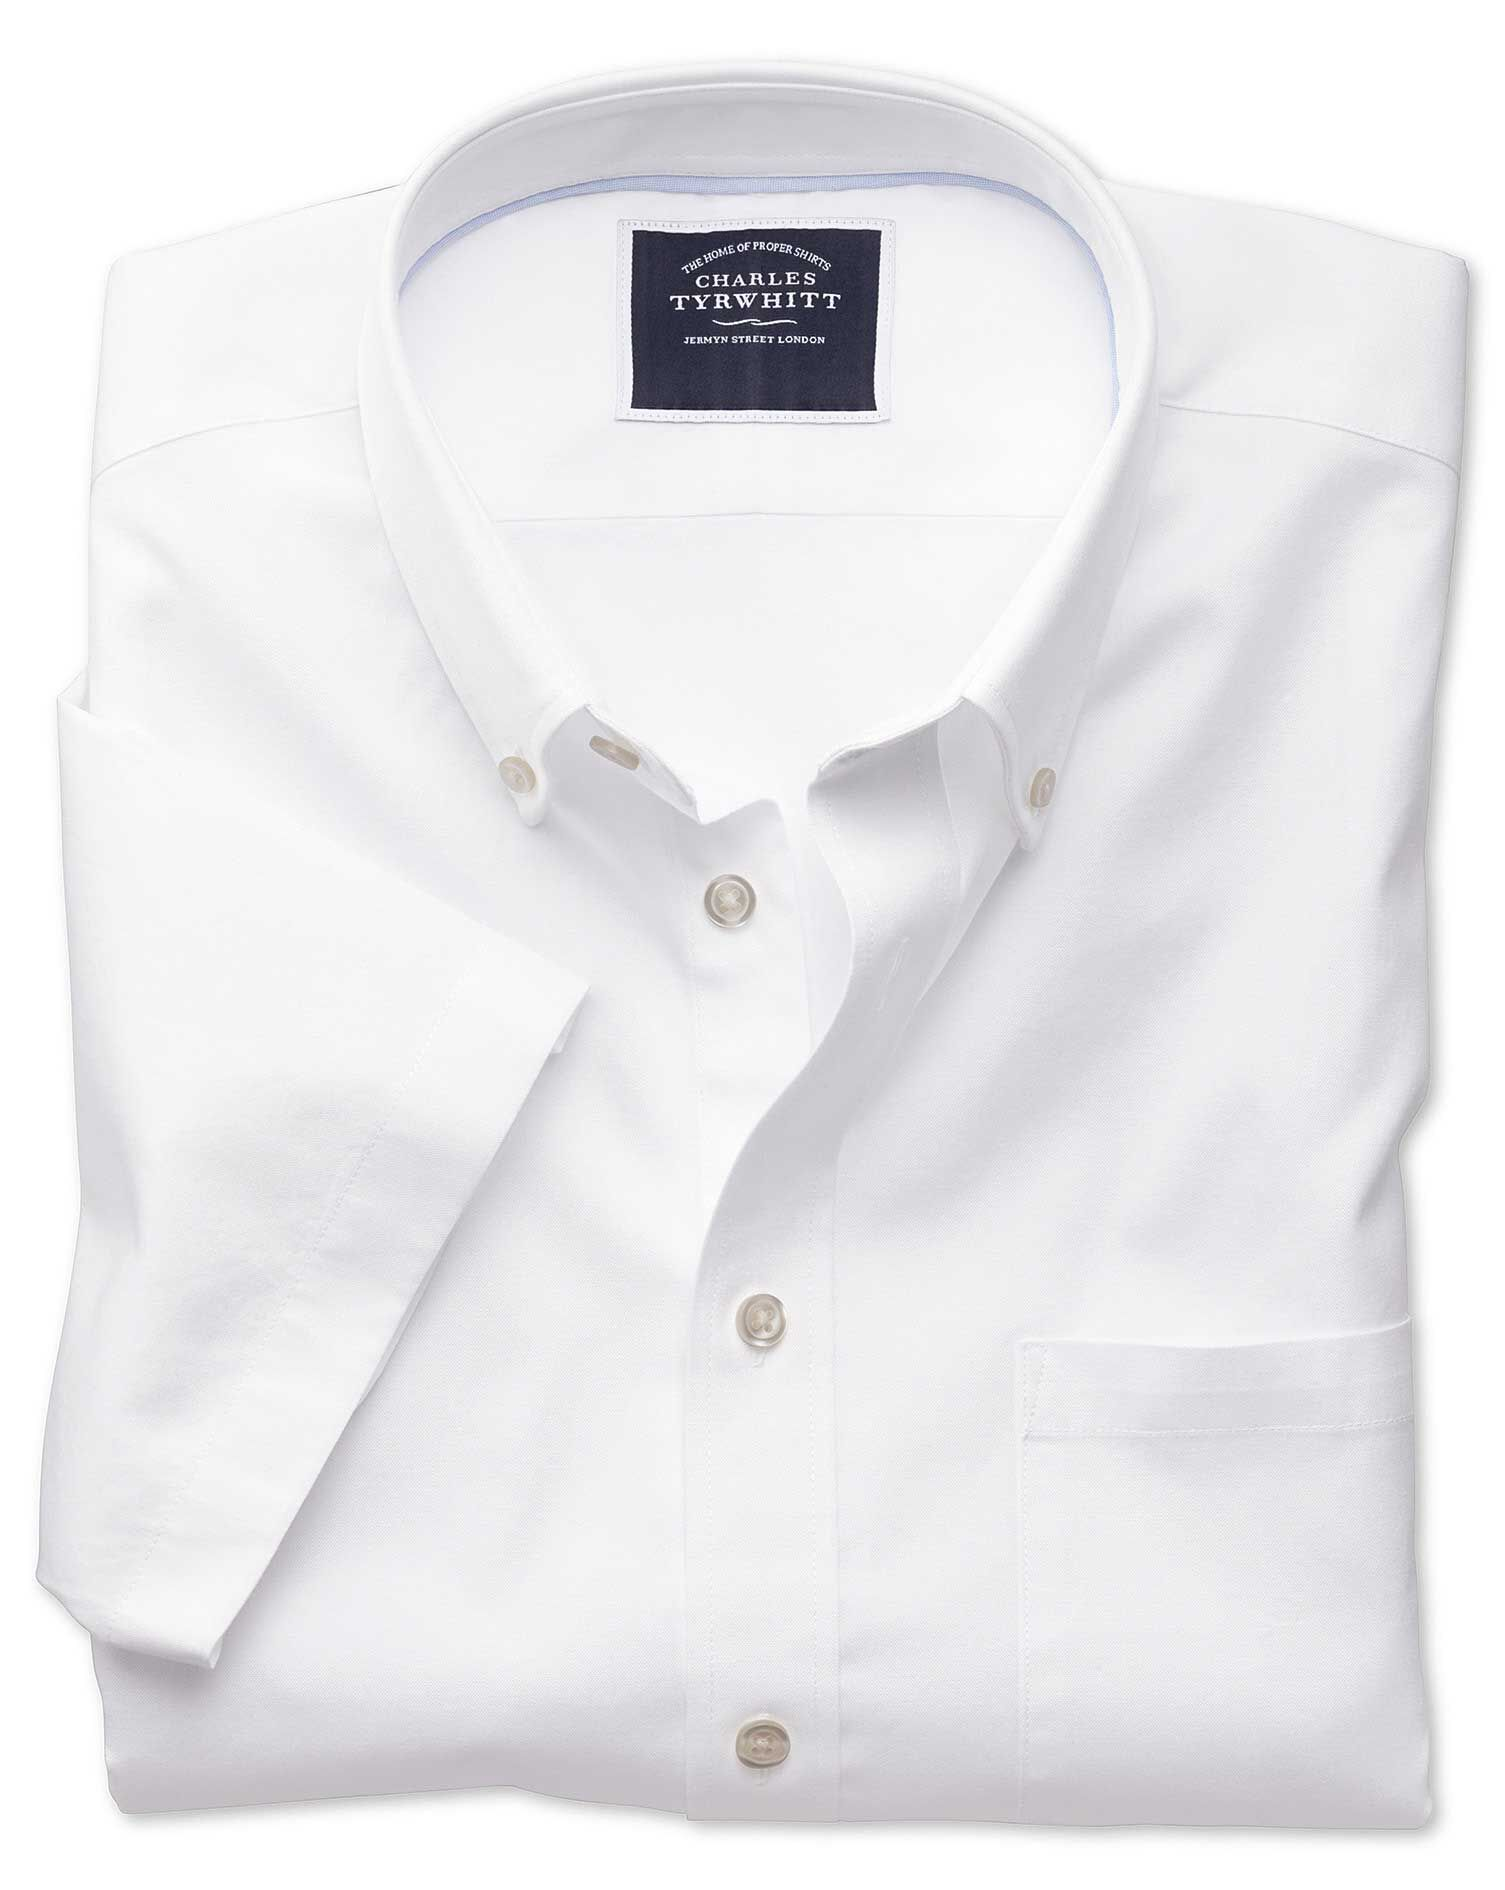 Classic Fit Button-Down Washed Oxford Short Sleeve White Cotton Shirt Single Cuff Size XXXL by Charl